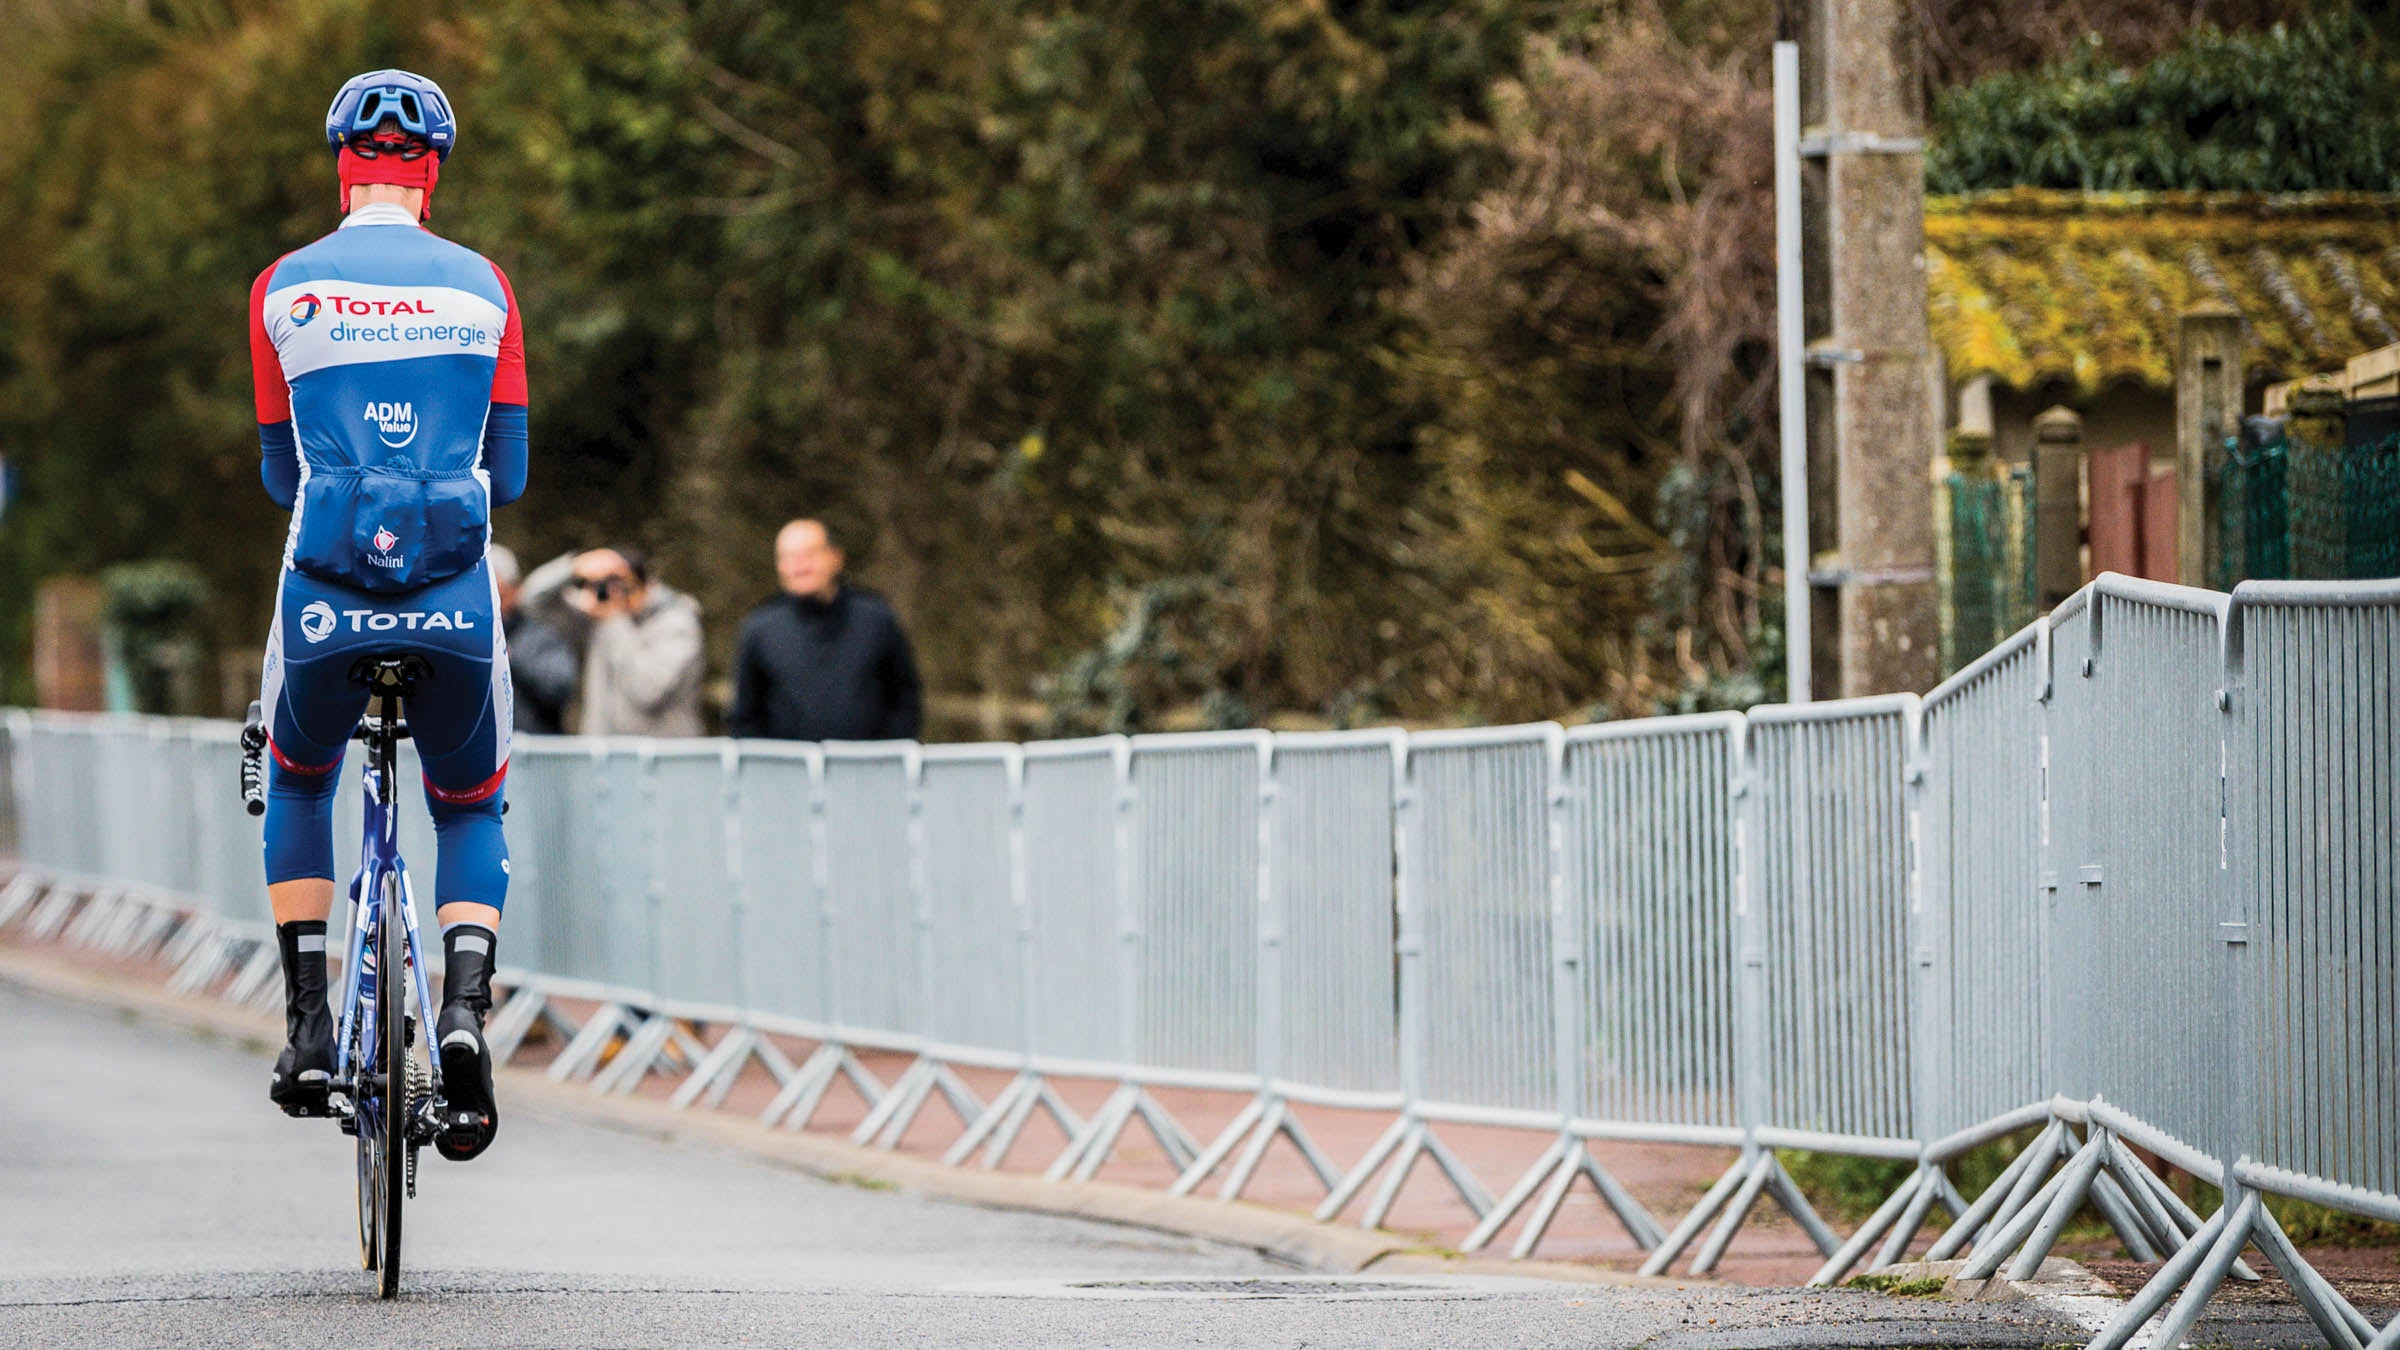 Single cyclist sitting up with back to the camera with metal fencing lining the road